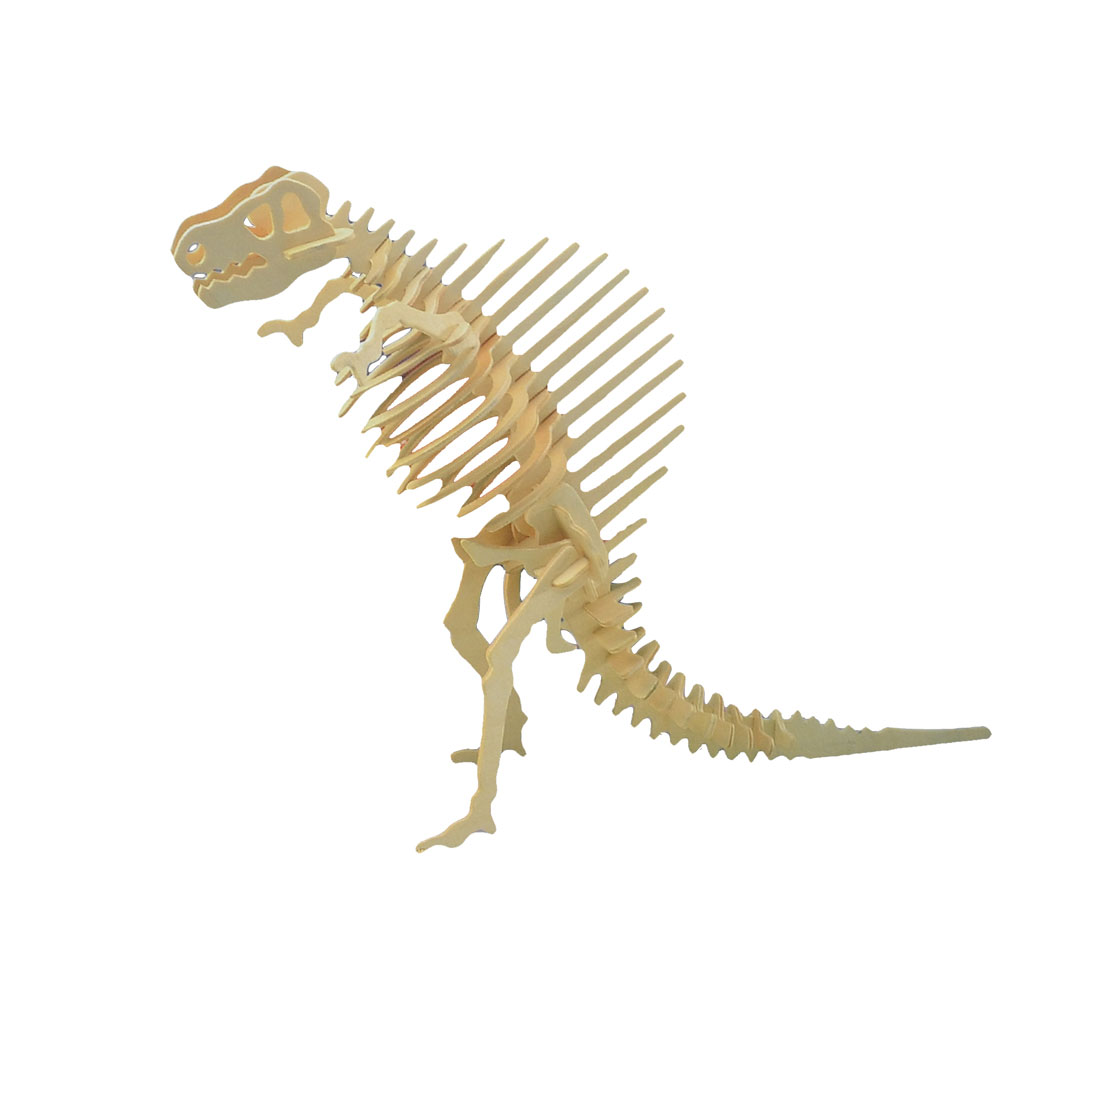 3D Woodcraft Construction Kit Wooden Spinosaurus Design Educational Assembling Toy